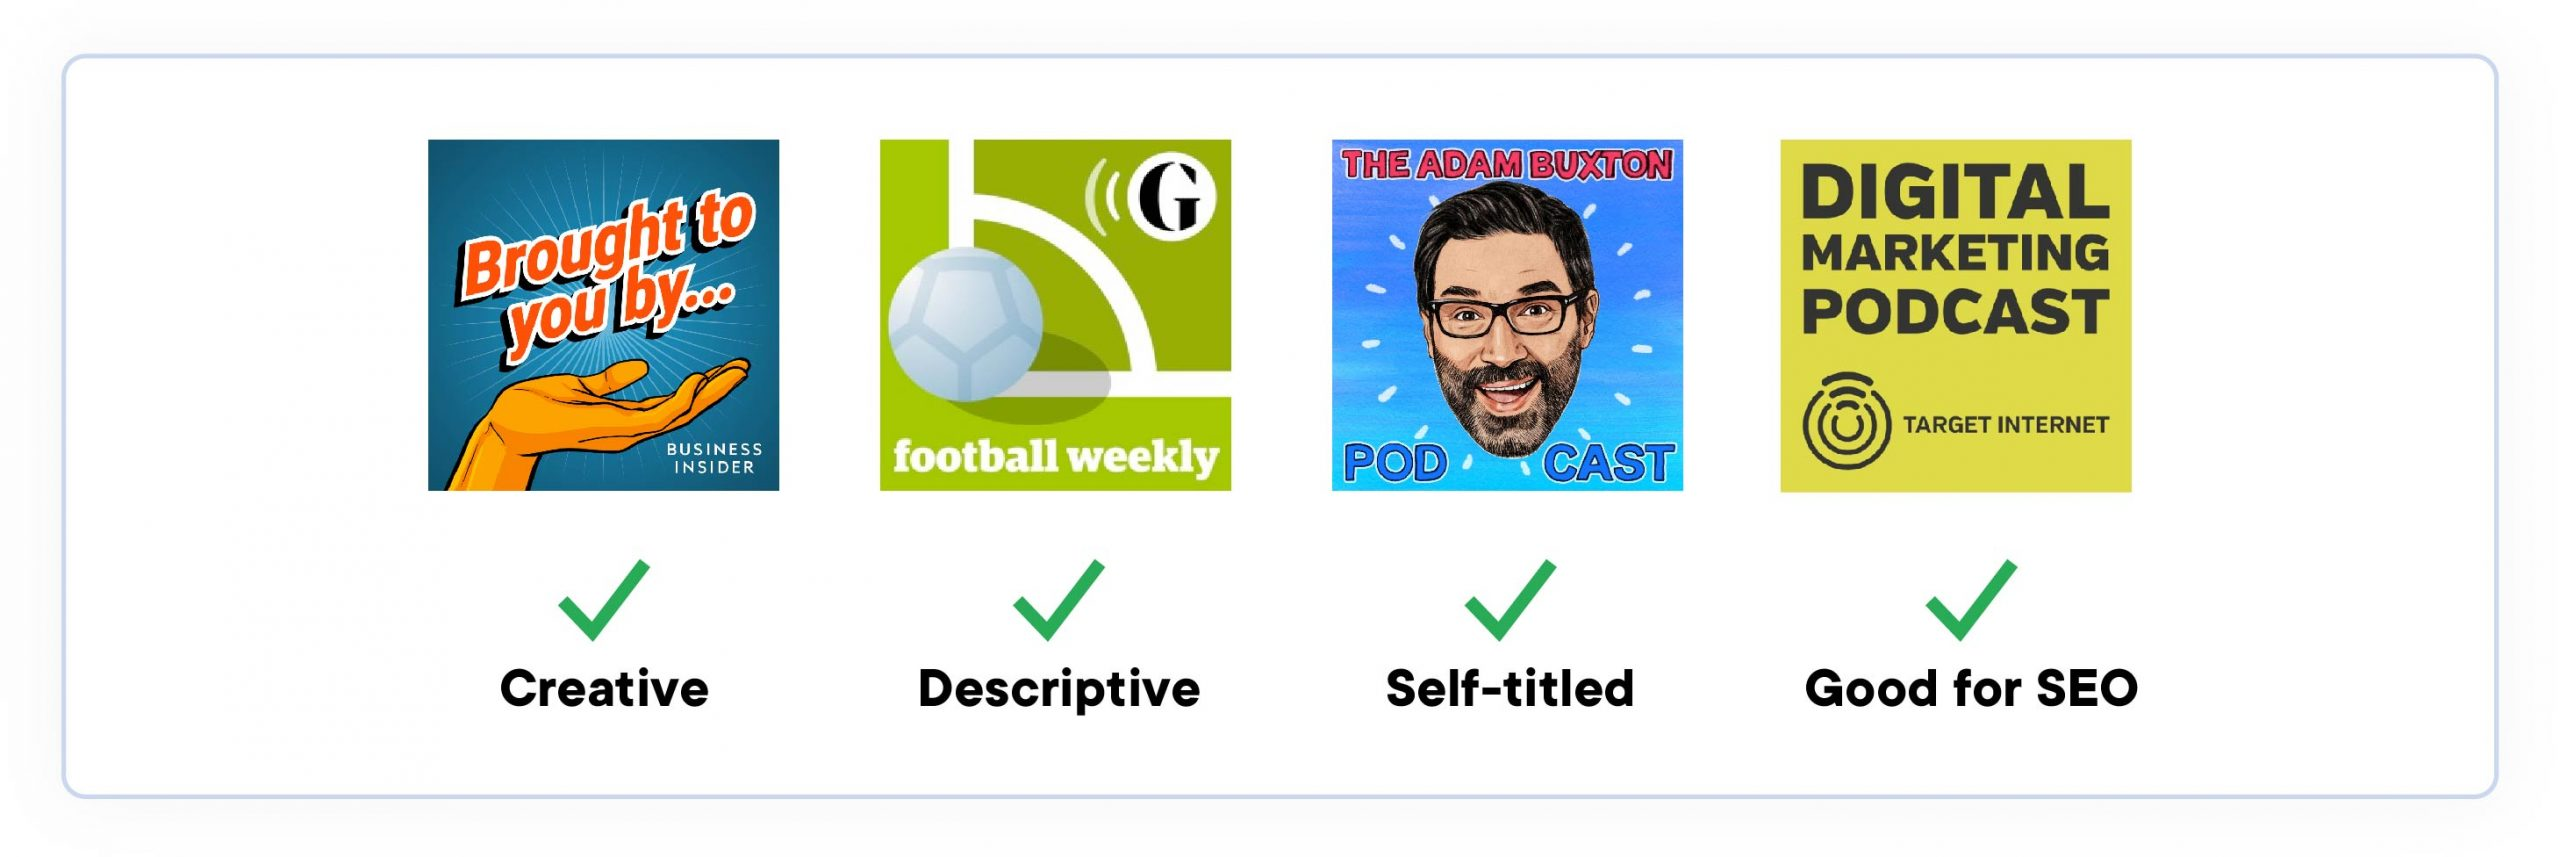 podcast names. 4 podcast covers and names, showing examples of creative, relevant, self-titled and optimized podcast names.